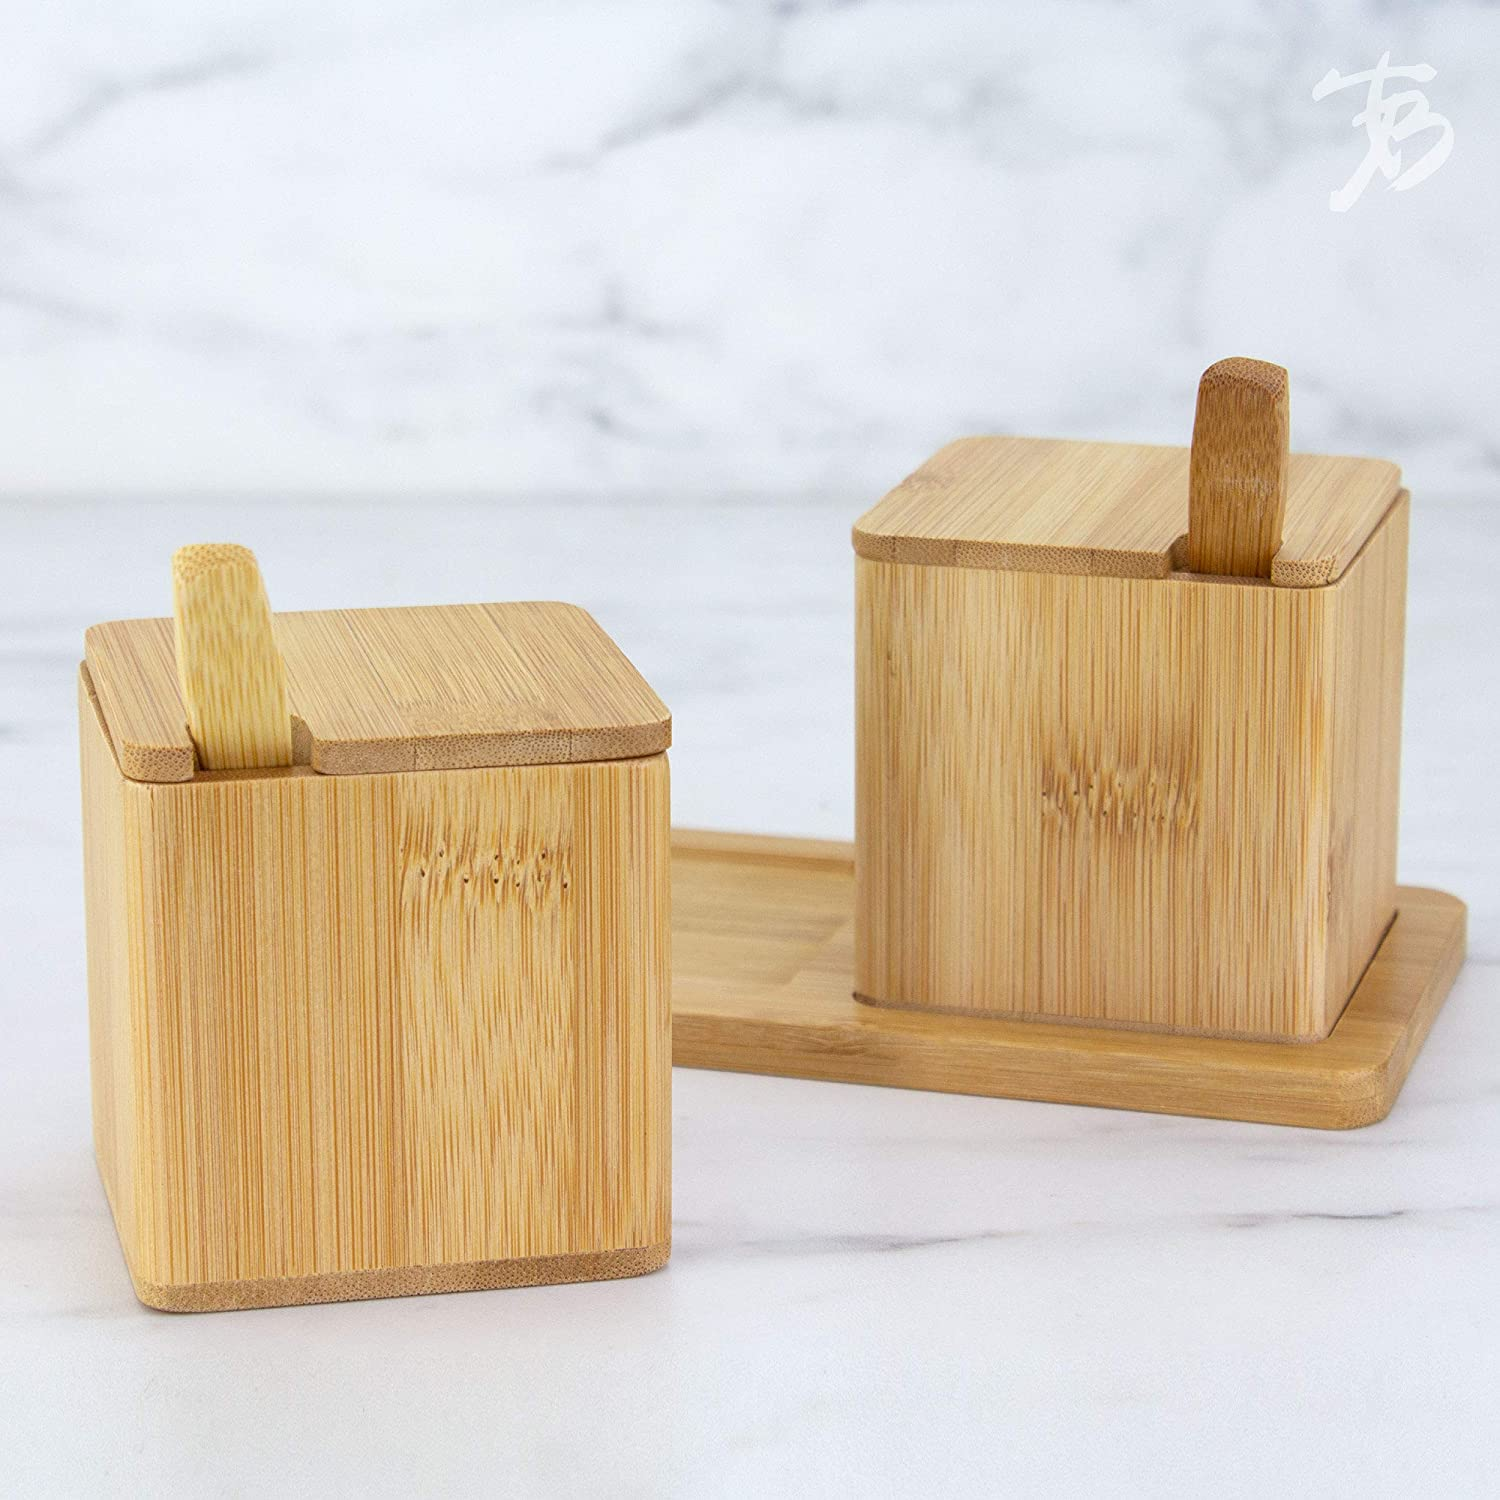 Totally Bamboo Little Dipper Bamboo Salt Box with Spoon 6 Ounce Capacity 20-8562